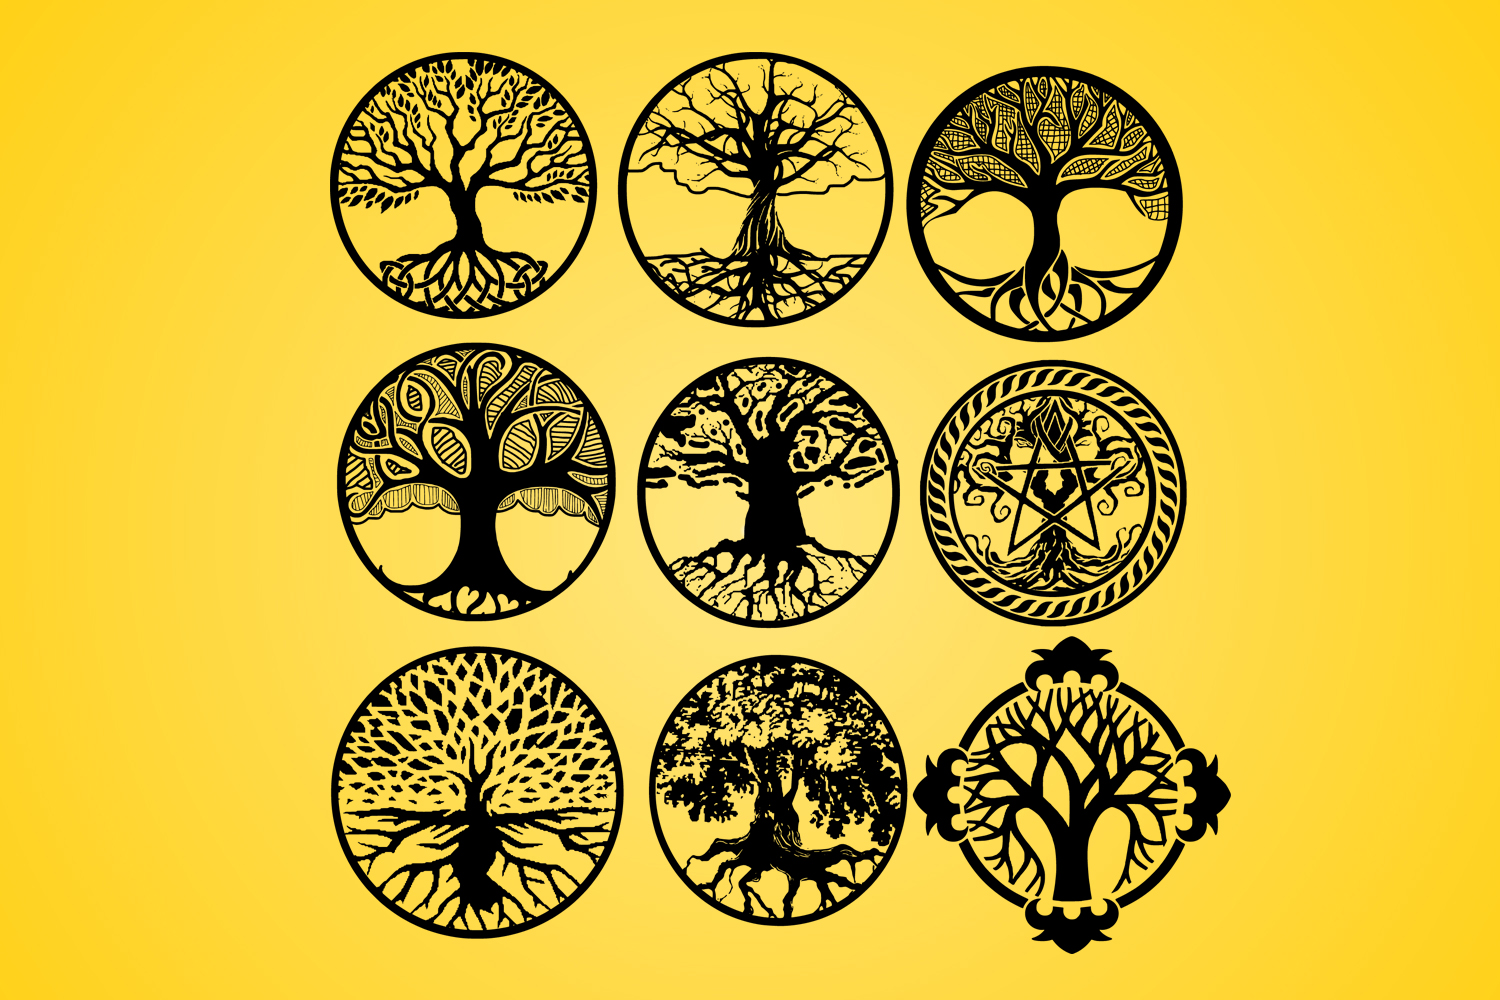 Download Free Life Of Tree Tree Vector Silhouette Graphic By Johanruartist for Cricut Explore, Silhouette and other cutting machines.